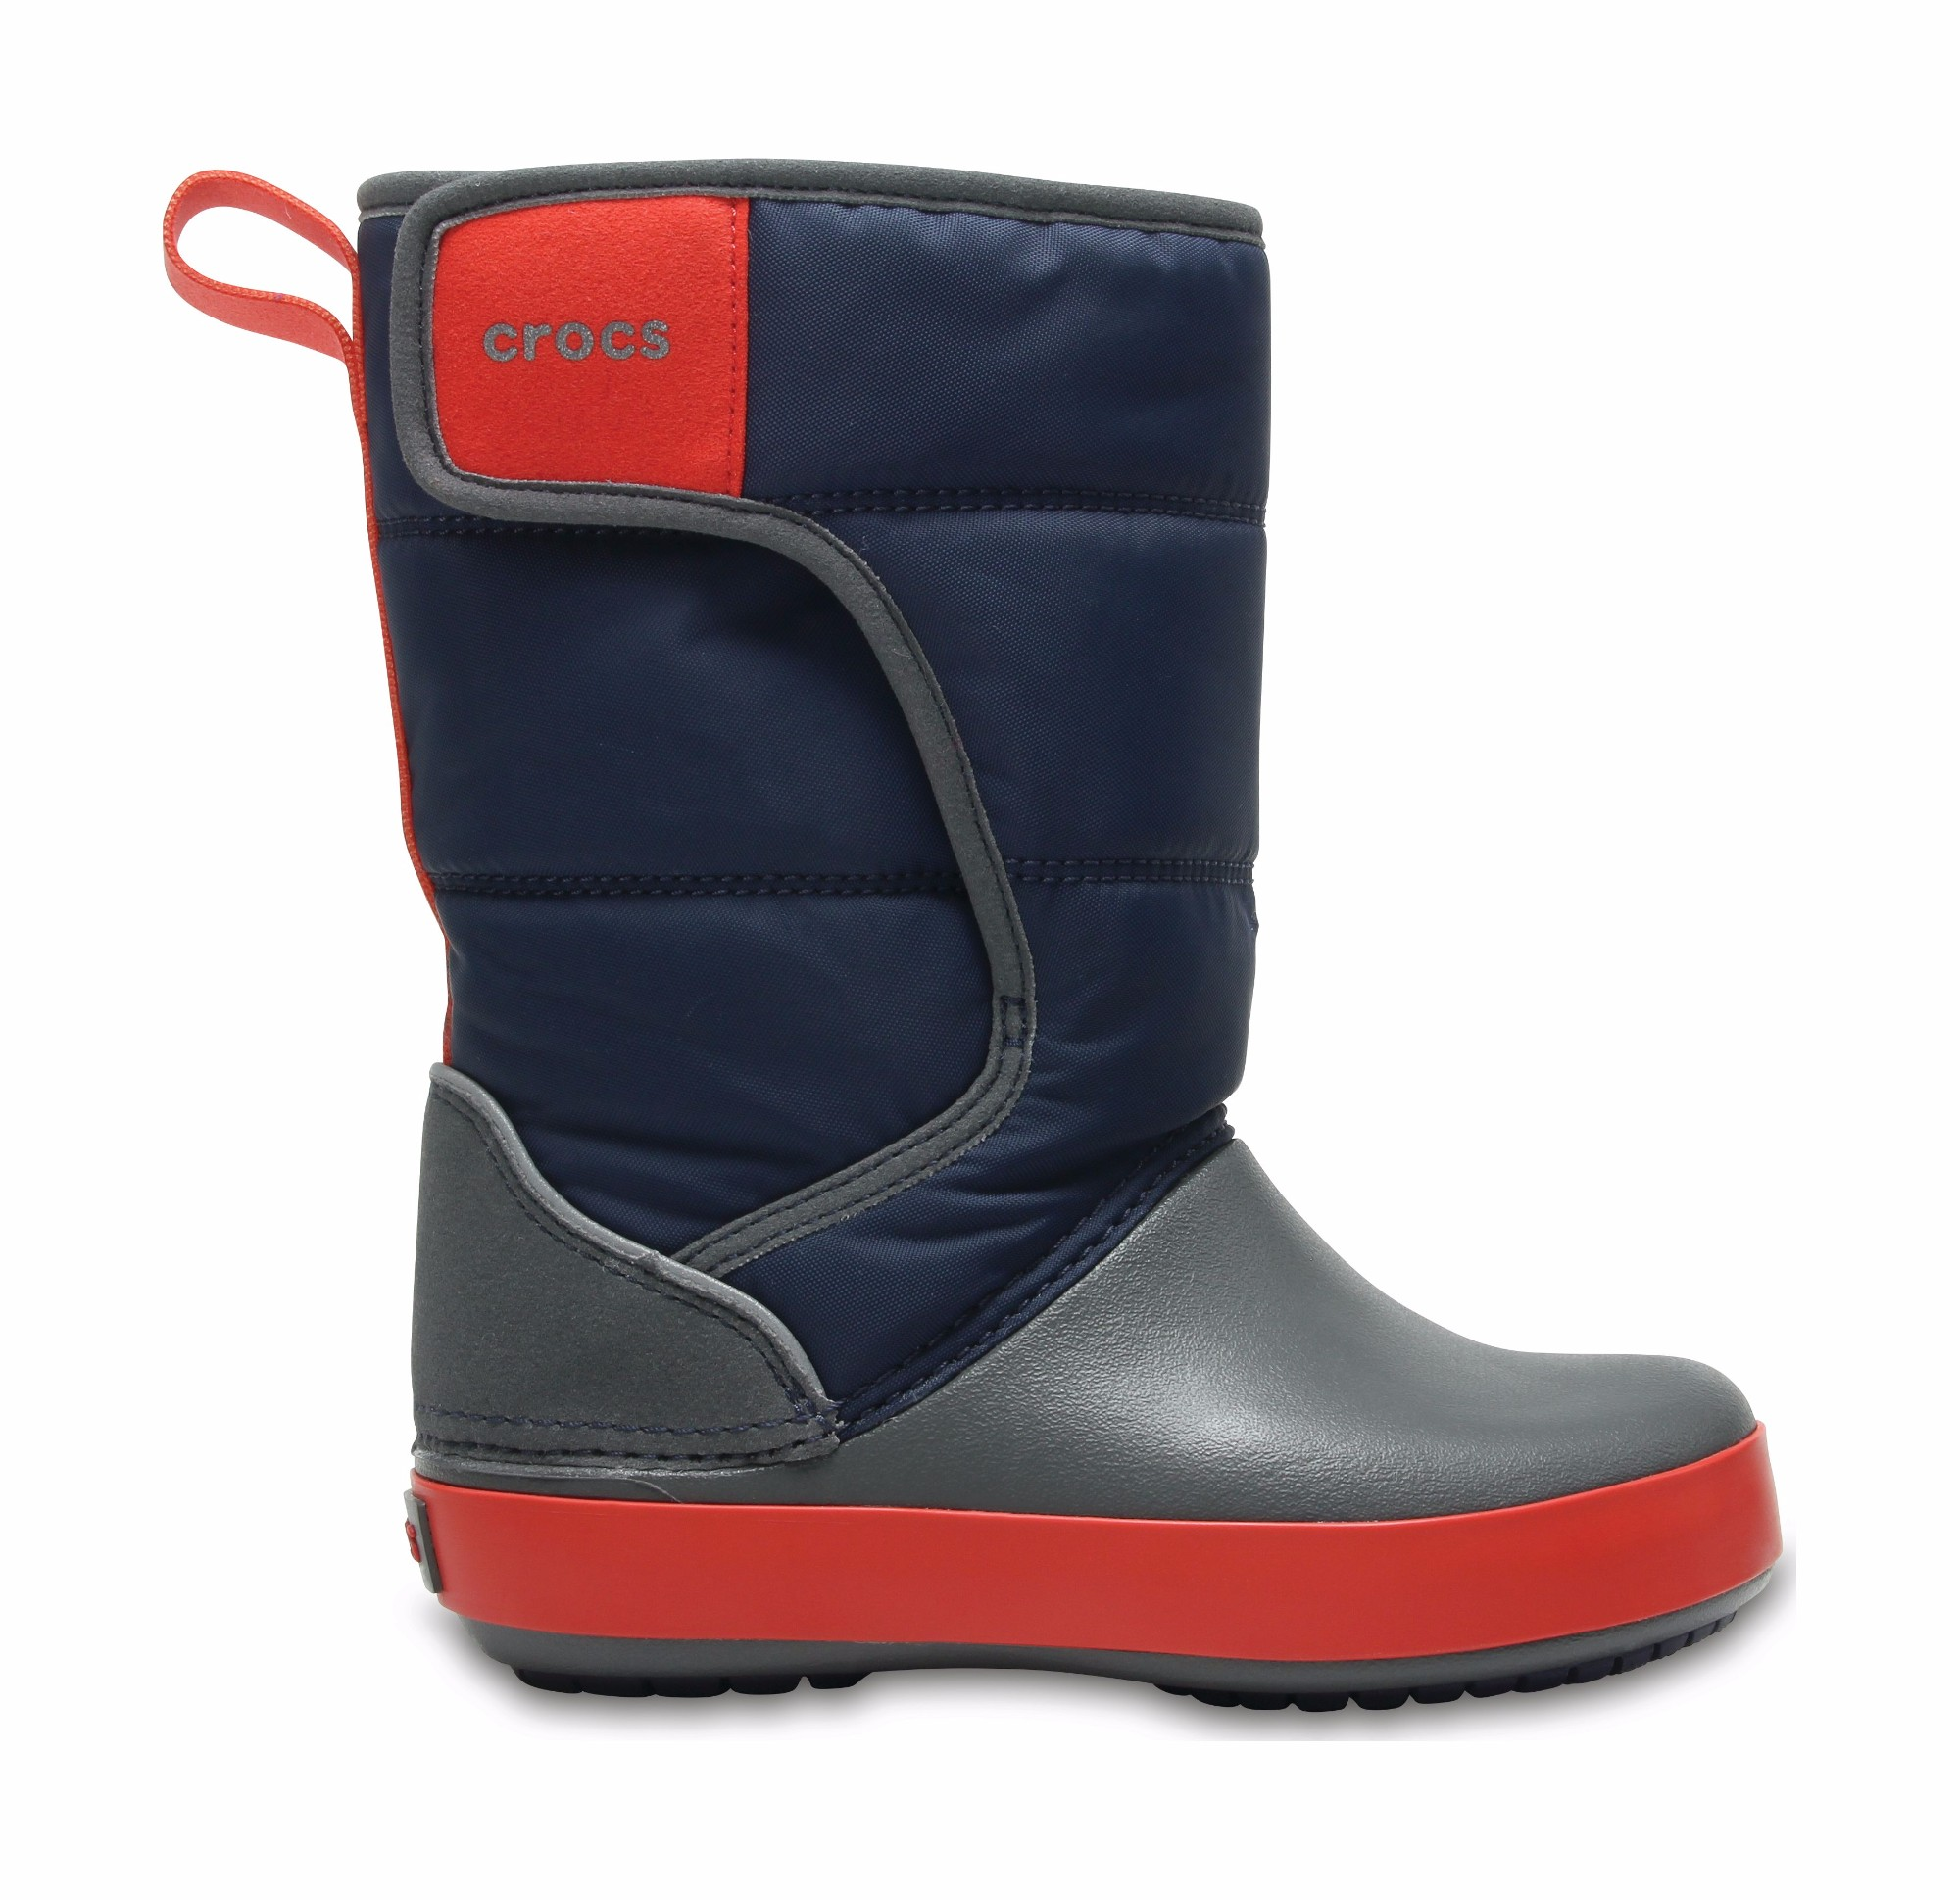 Crocs™ Lodgepoint Snow Boot Kid's Navy/Slate Grey 30